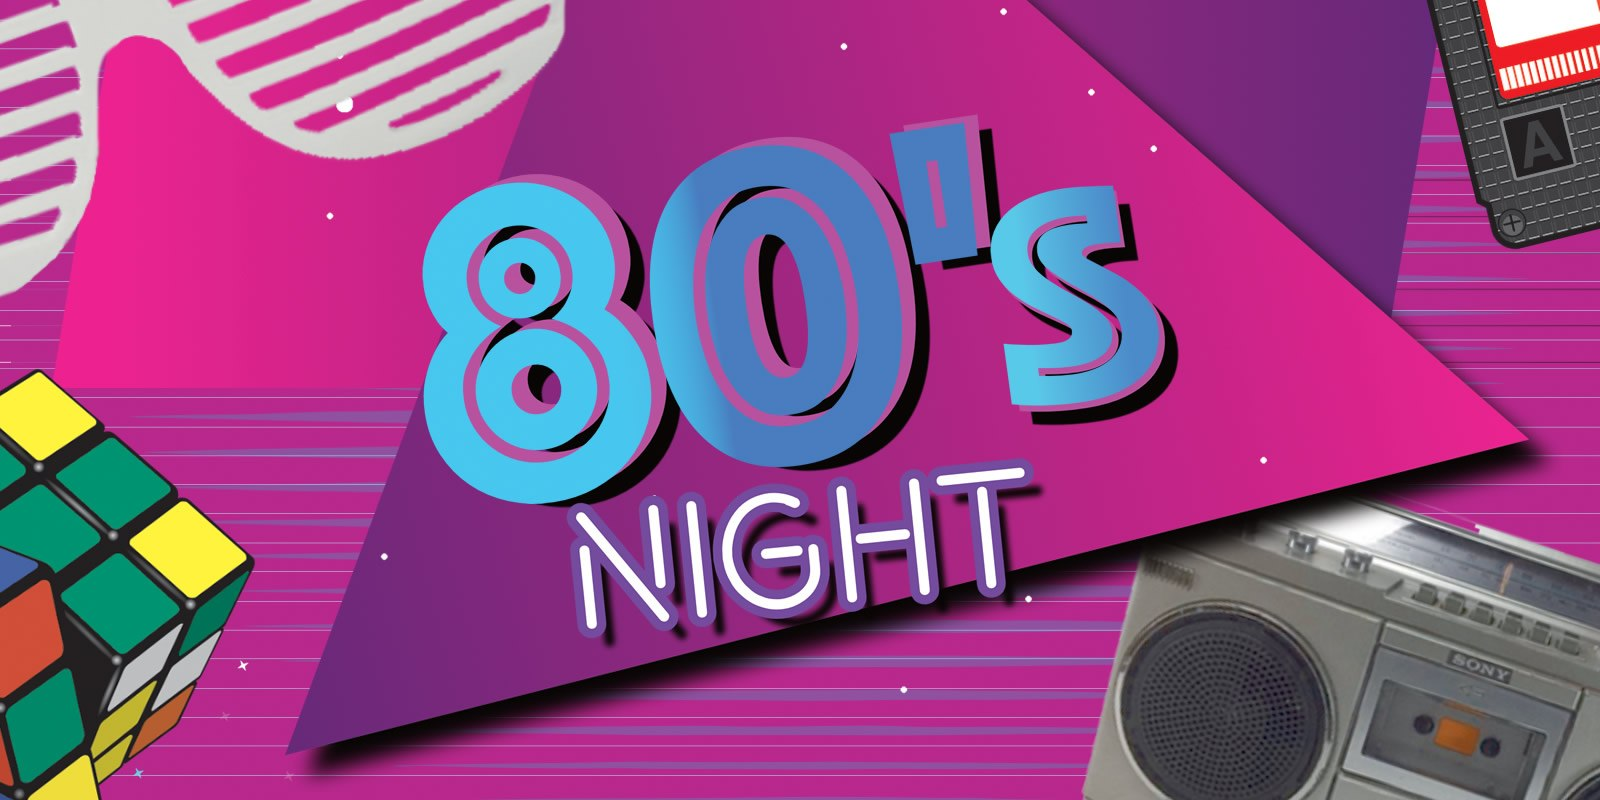 80s Night  Local Event  Discover Central Massachusetts